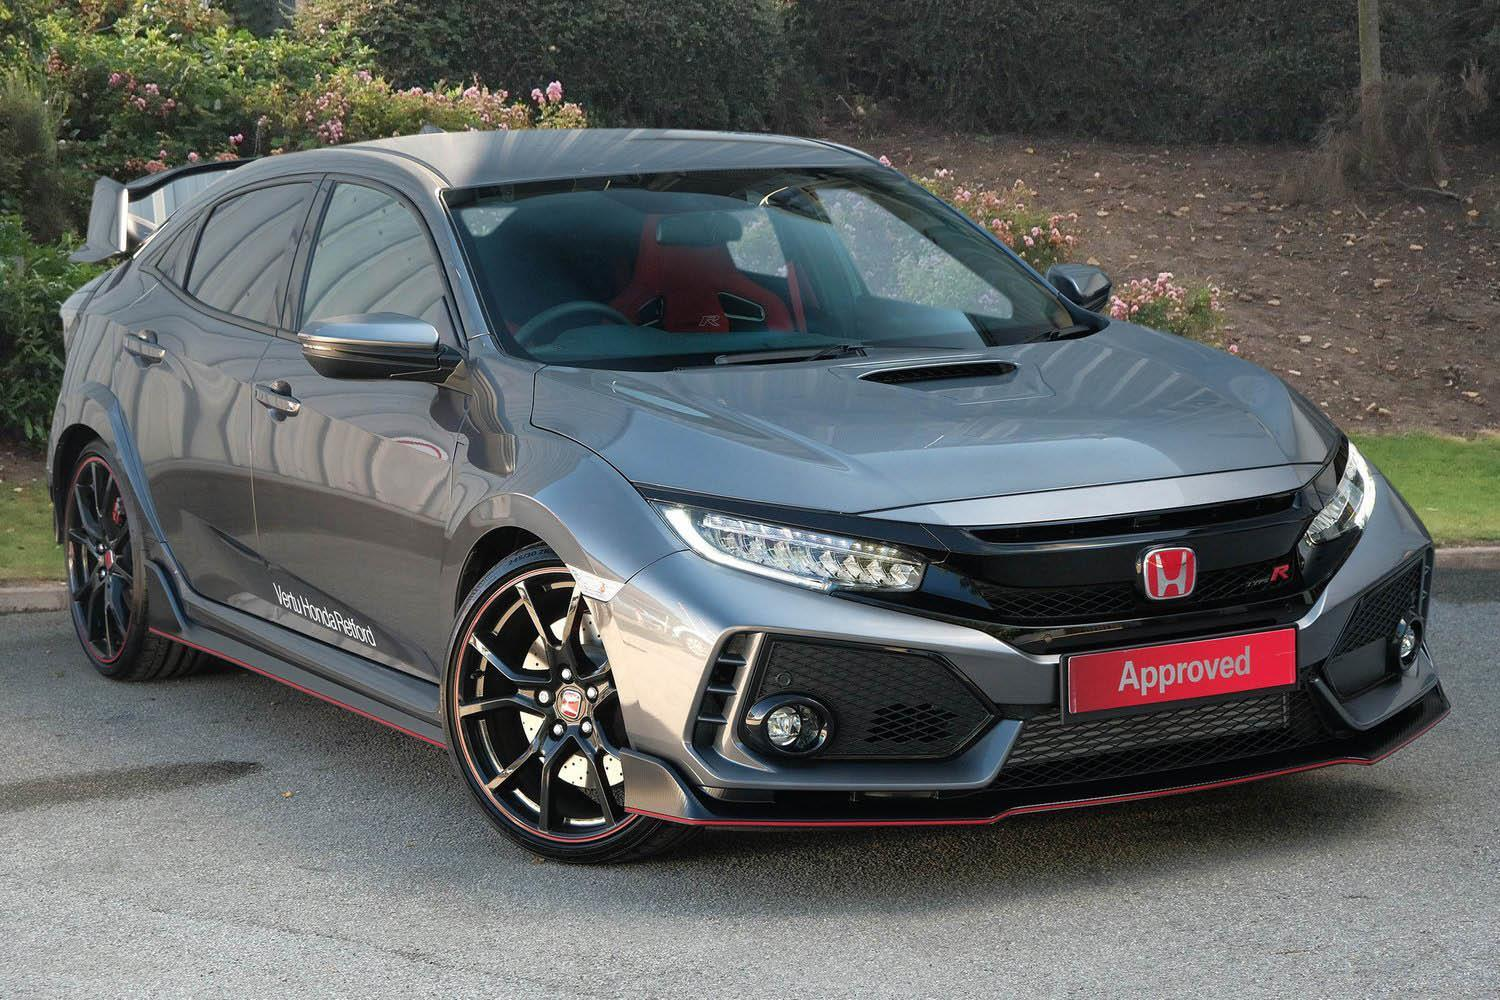 used honda civic type r 2 0 vtec turbo type r gt 5dr petrol hatchback for sale vertu honda. Black Bedroom Furniture Sets. Home Design Ideas